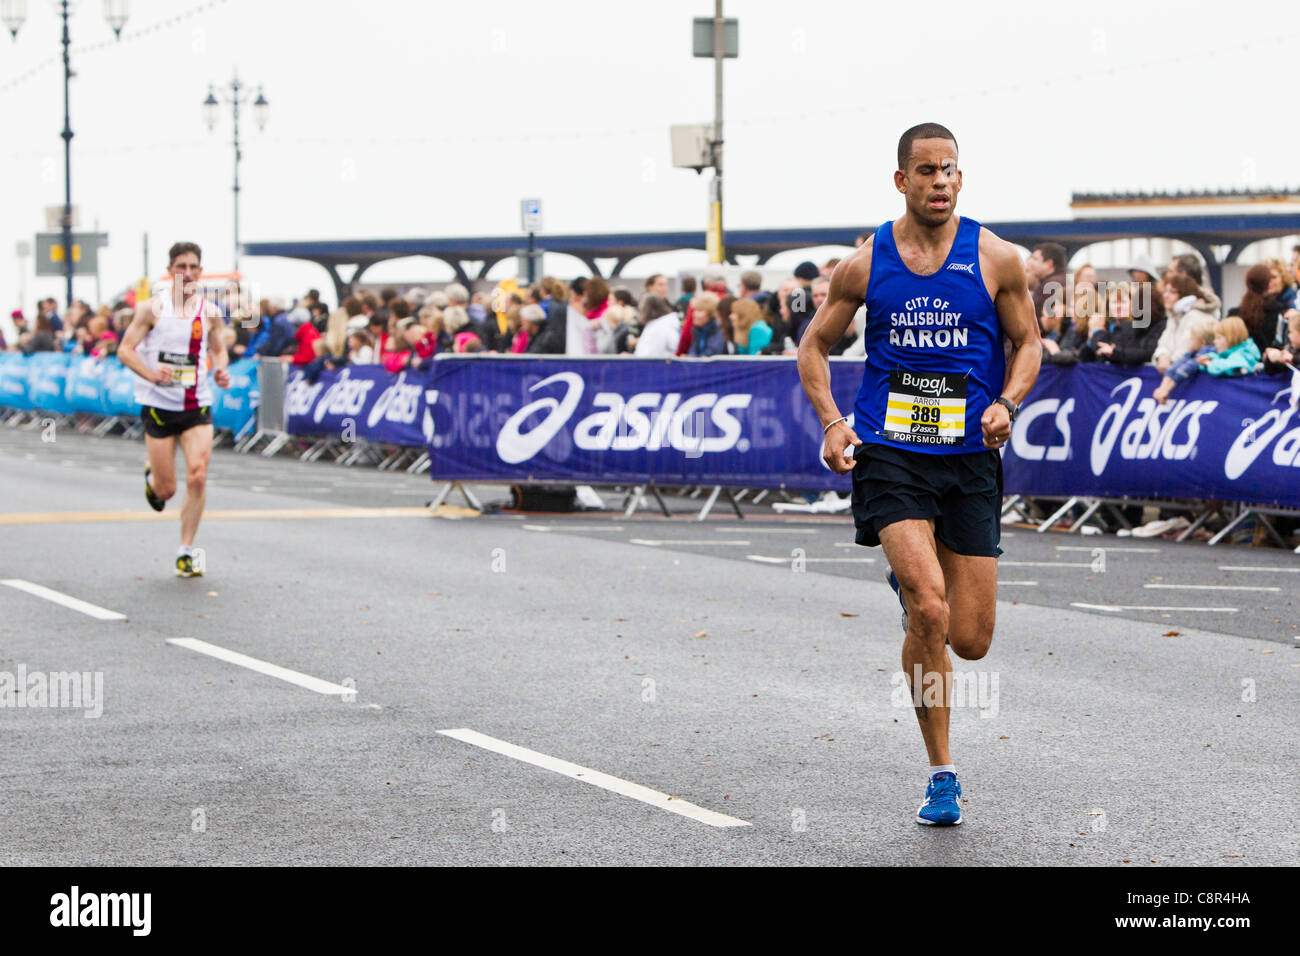 PORTSMOUTH, UK, 30/10/2011. Runners enter the final straight of the Bupa Great South Run. - Stock Image